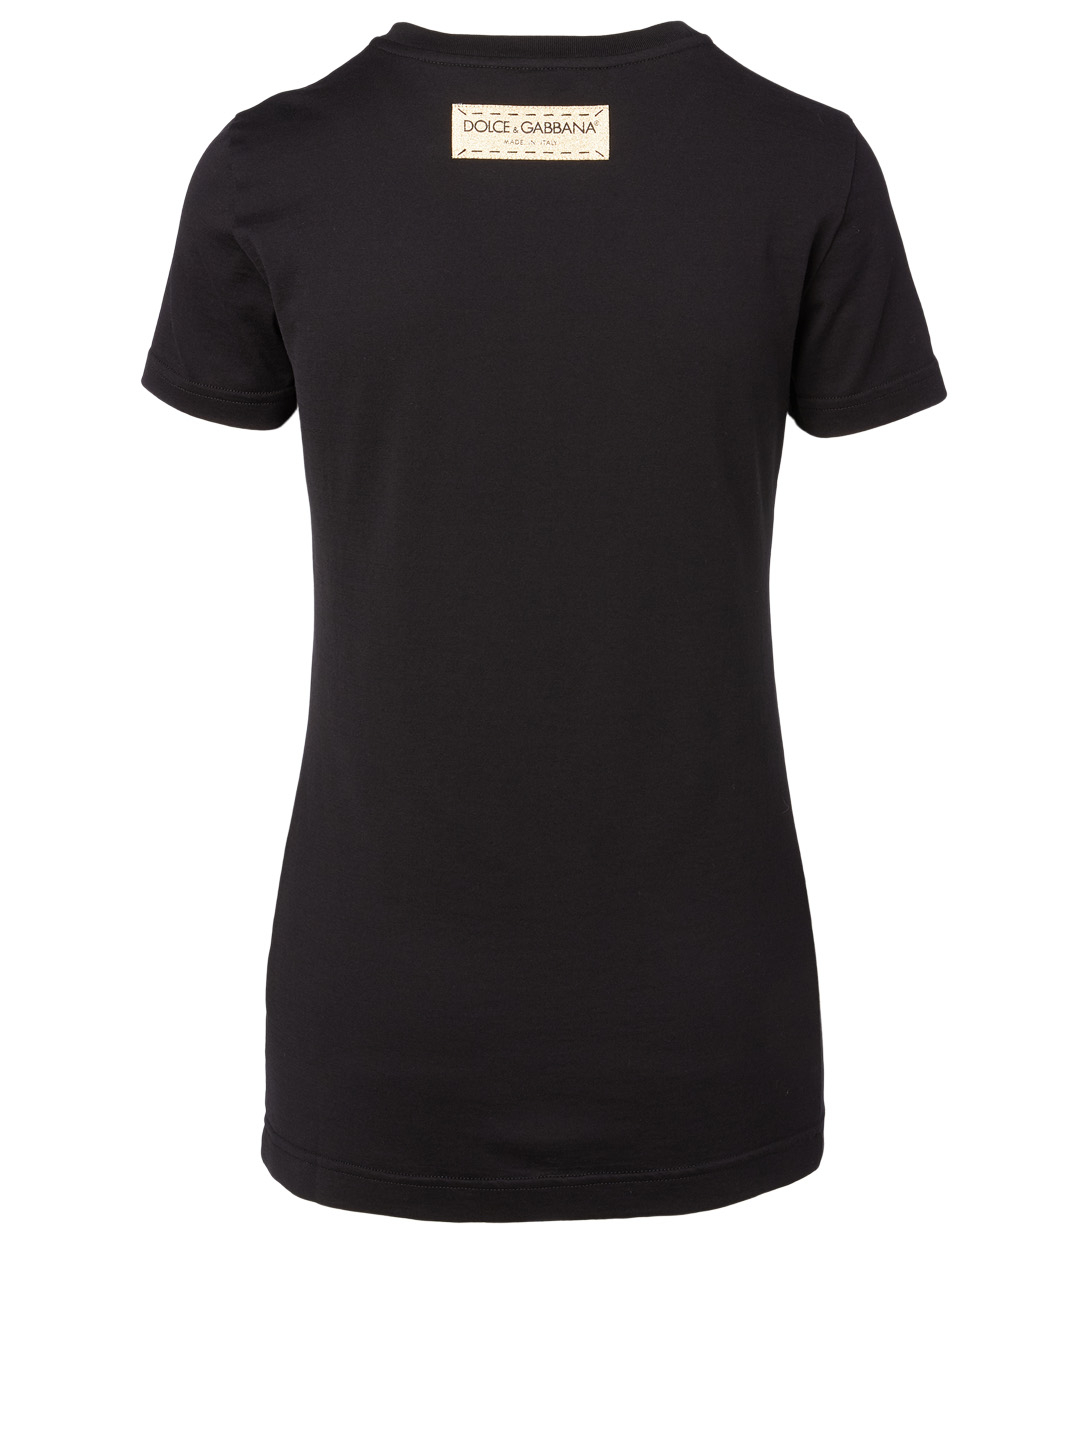 DOLCE & GABBANA Logo Cotton T-Shirt Women's Black